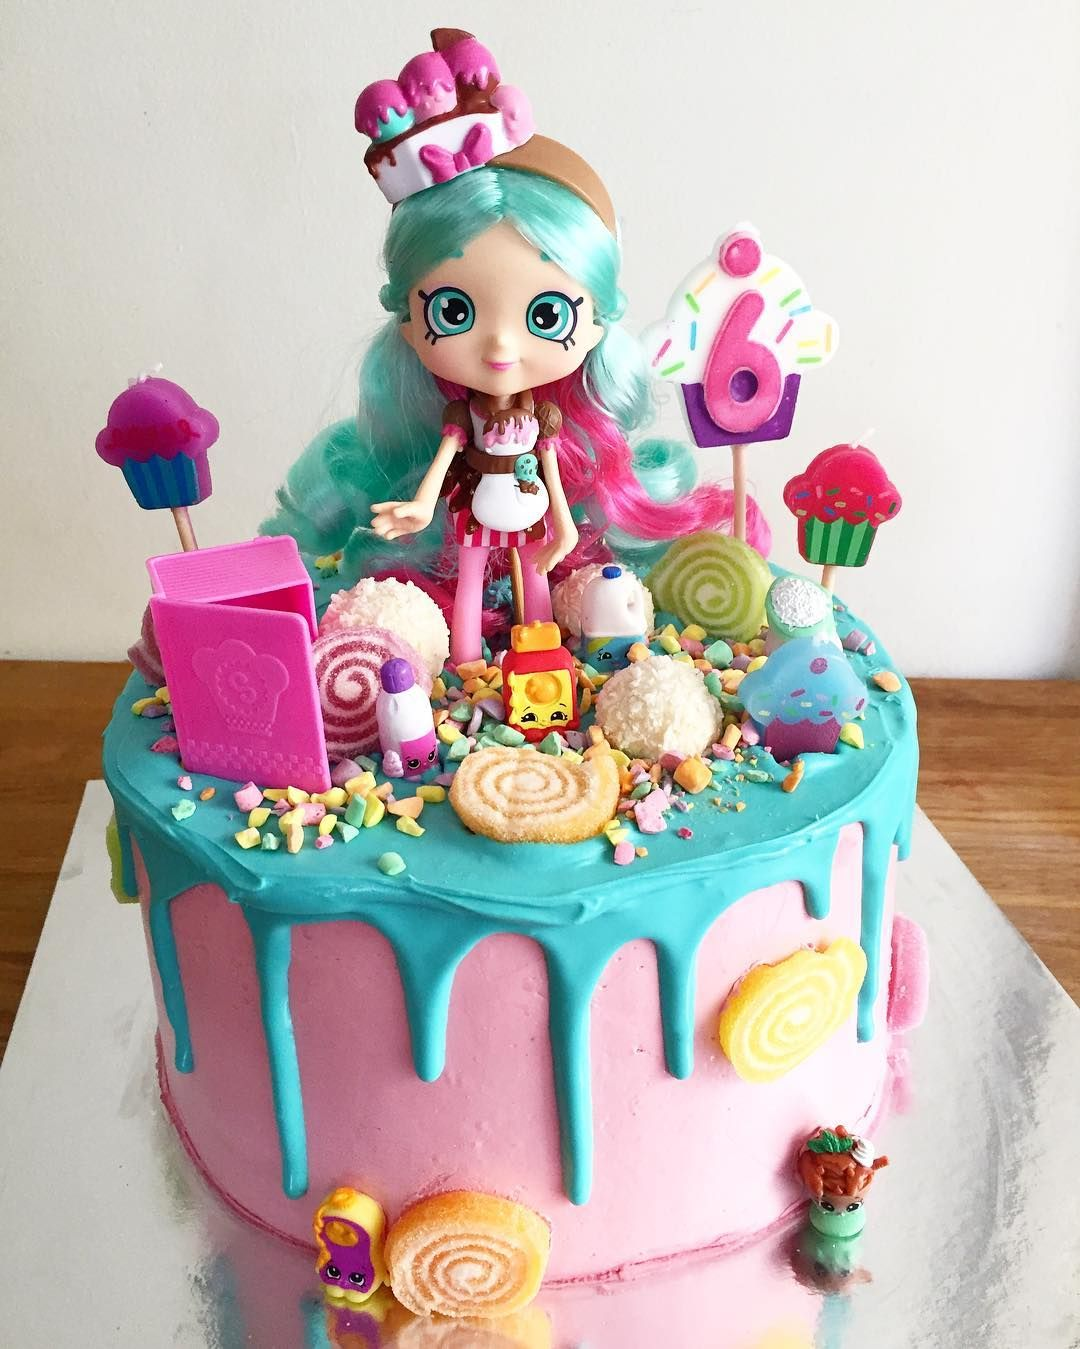 Pin By Radi8 Makeup & Hair On Girl's Birthday Cakes